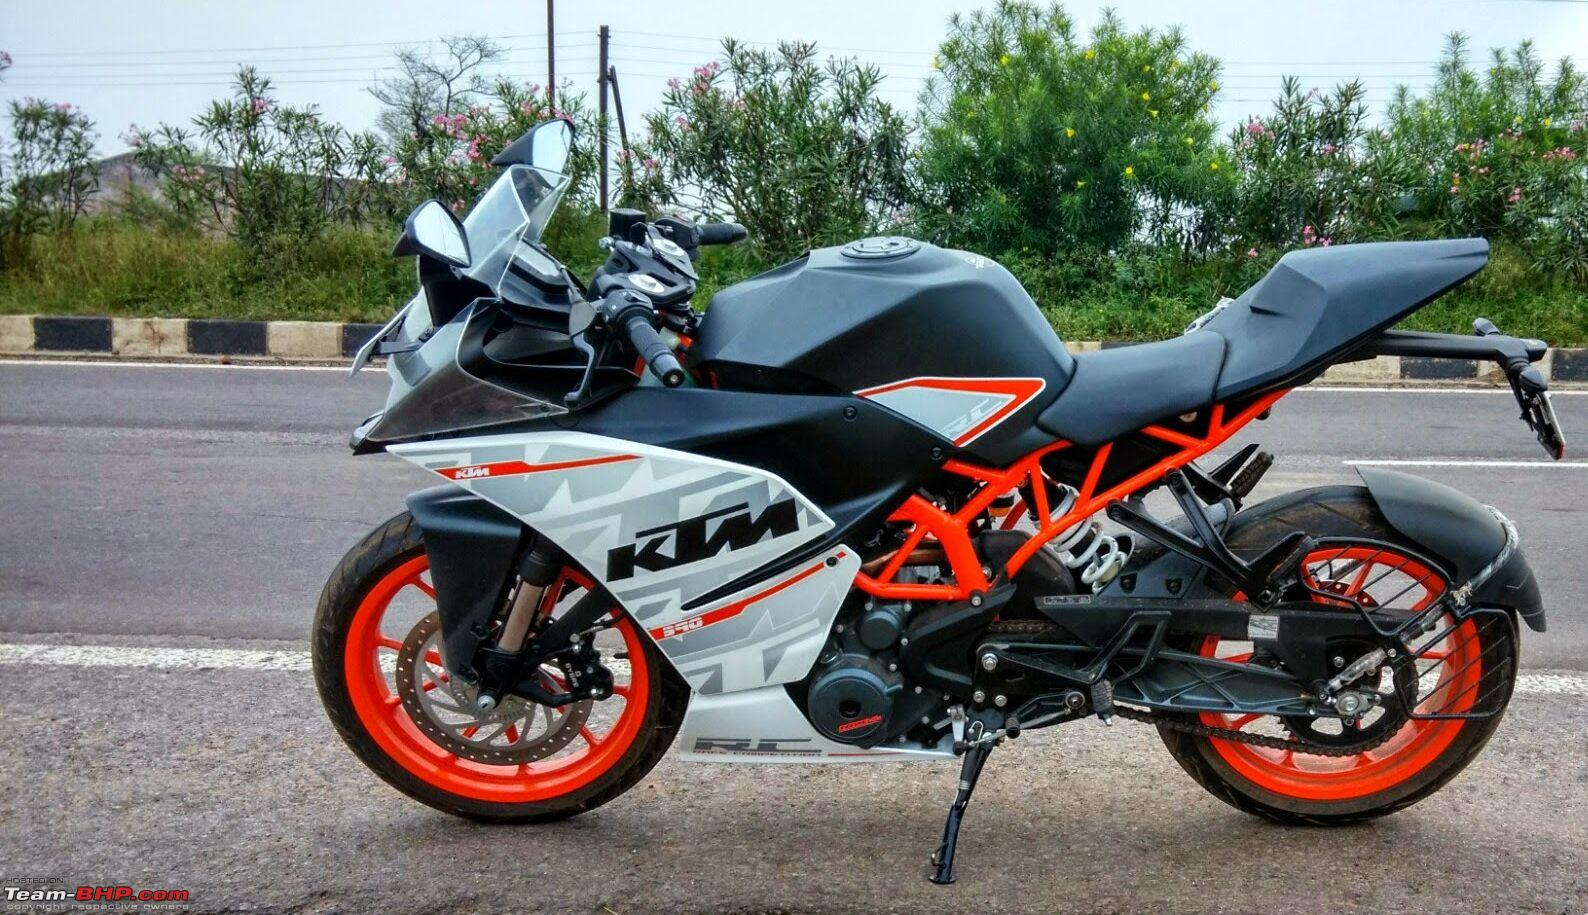 Ktm Rc Ktm Rc 390 Old 1588x915 Wallpaper Teahub Io